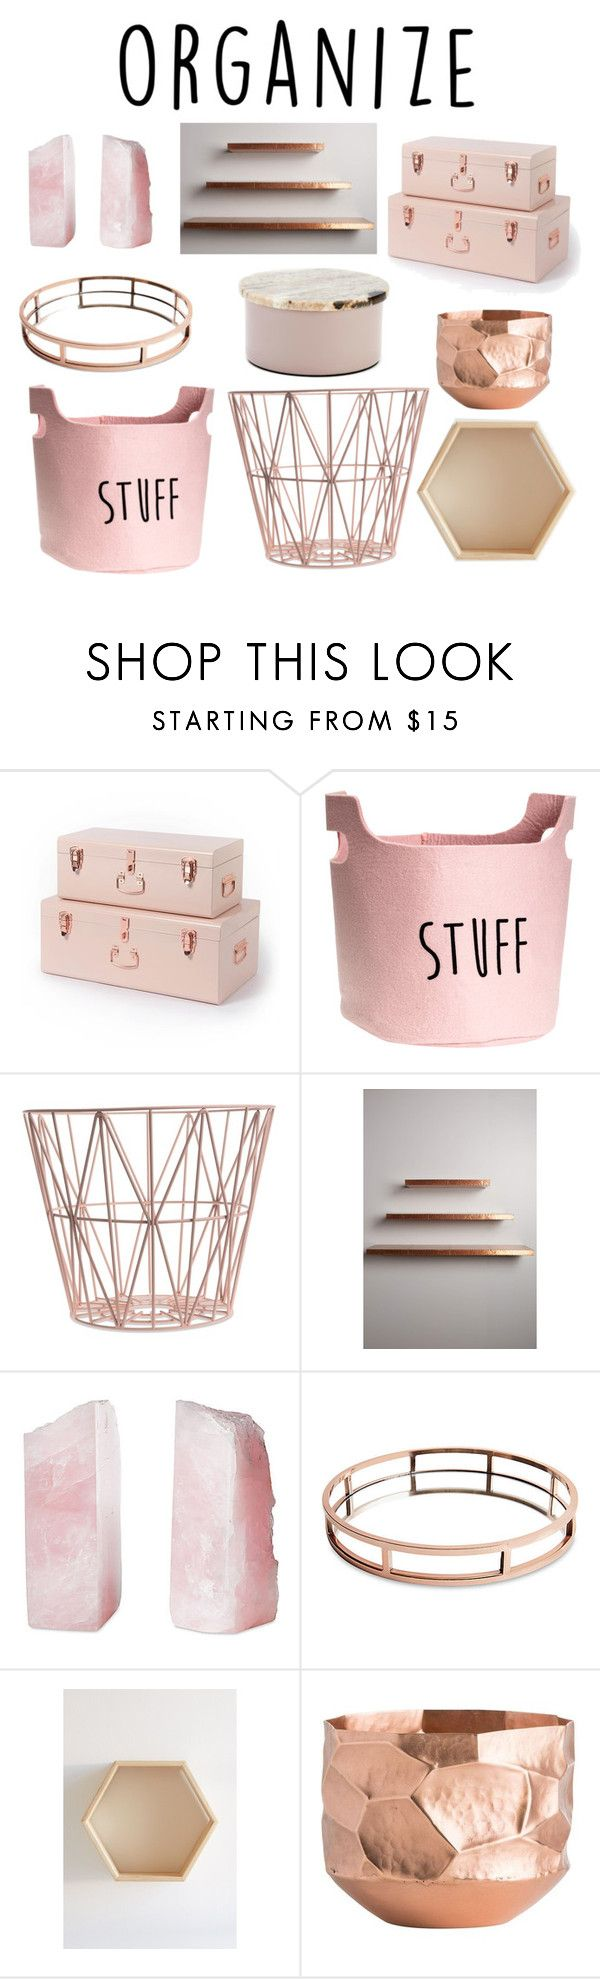 """""""Organize"""" by lilyheart4ever ❤ liked on Polyvore featuring interior, interiors, interior design, home, home decor, interior decorating, ferm LIVING, Anthropologie, Philmore and Urban Outfitters"""